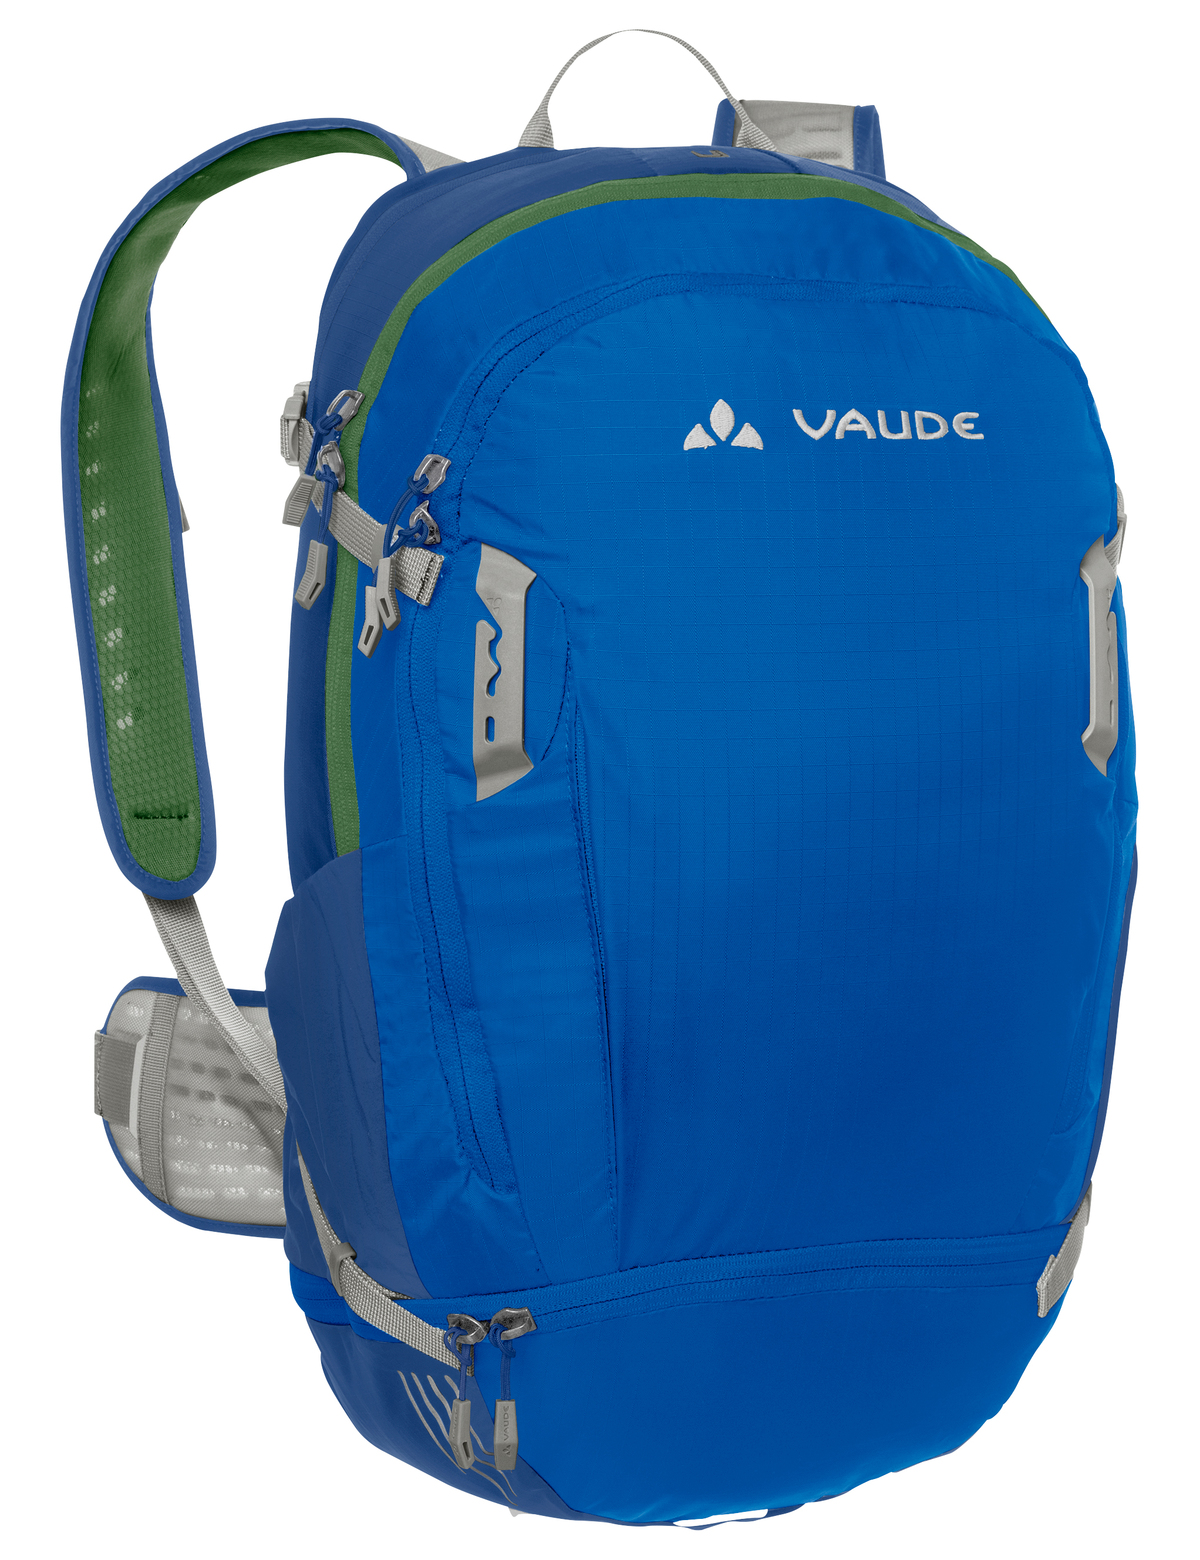 VAUDE Bike Alpin 30+5 hydro blue/royal  - 2-Rad-Sport Wehrle